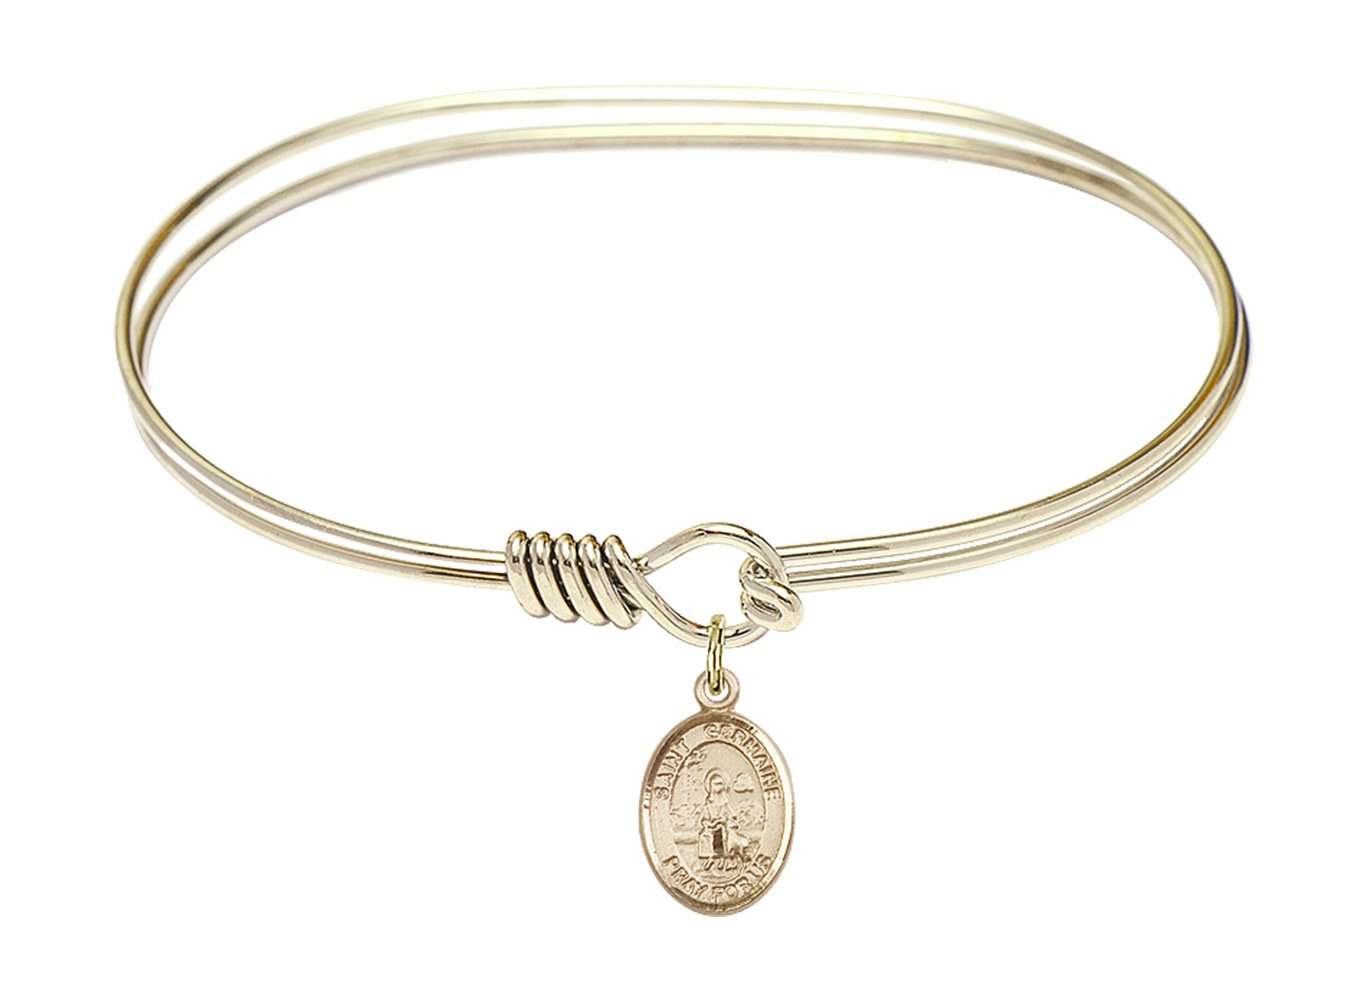 St. Germaine Cousin Charm On A 7 Inch Oval Eye Hook Bangle Bracelet